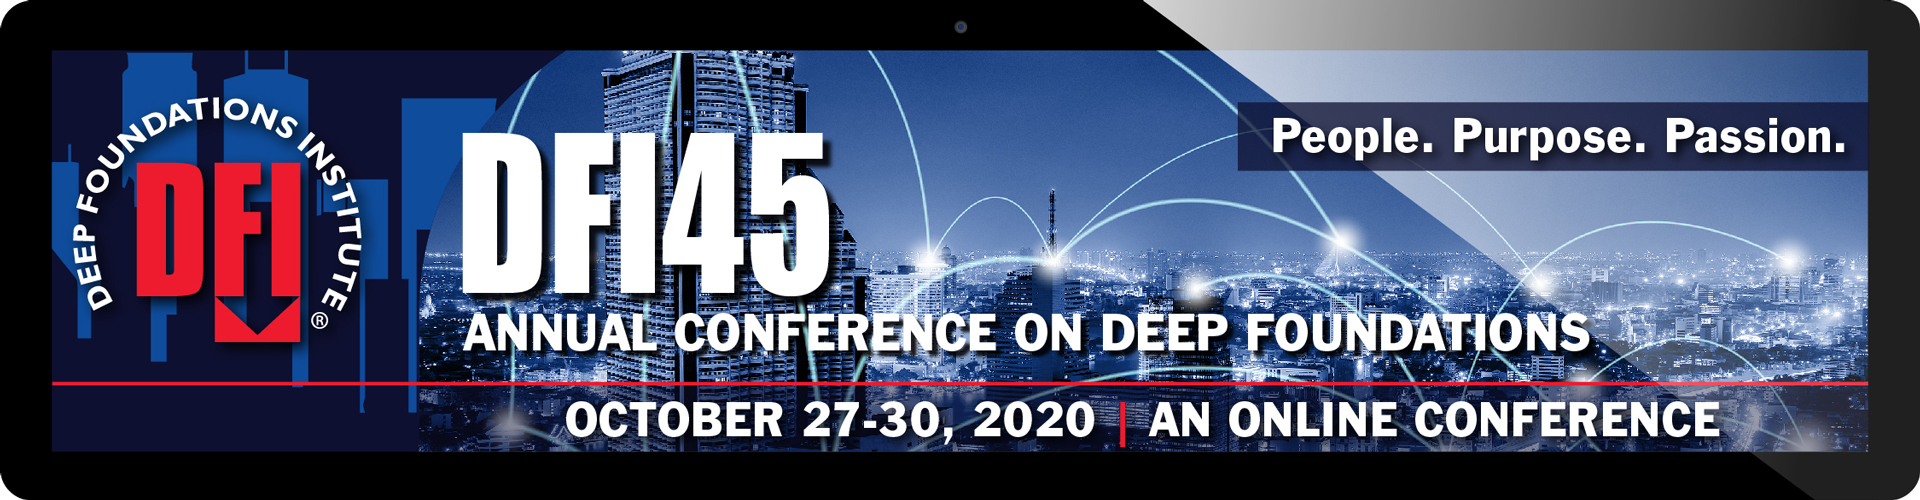 DFI 45th Annual Conference